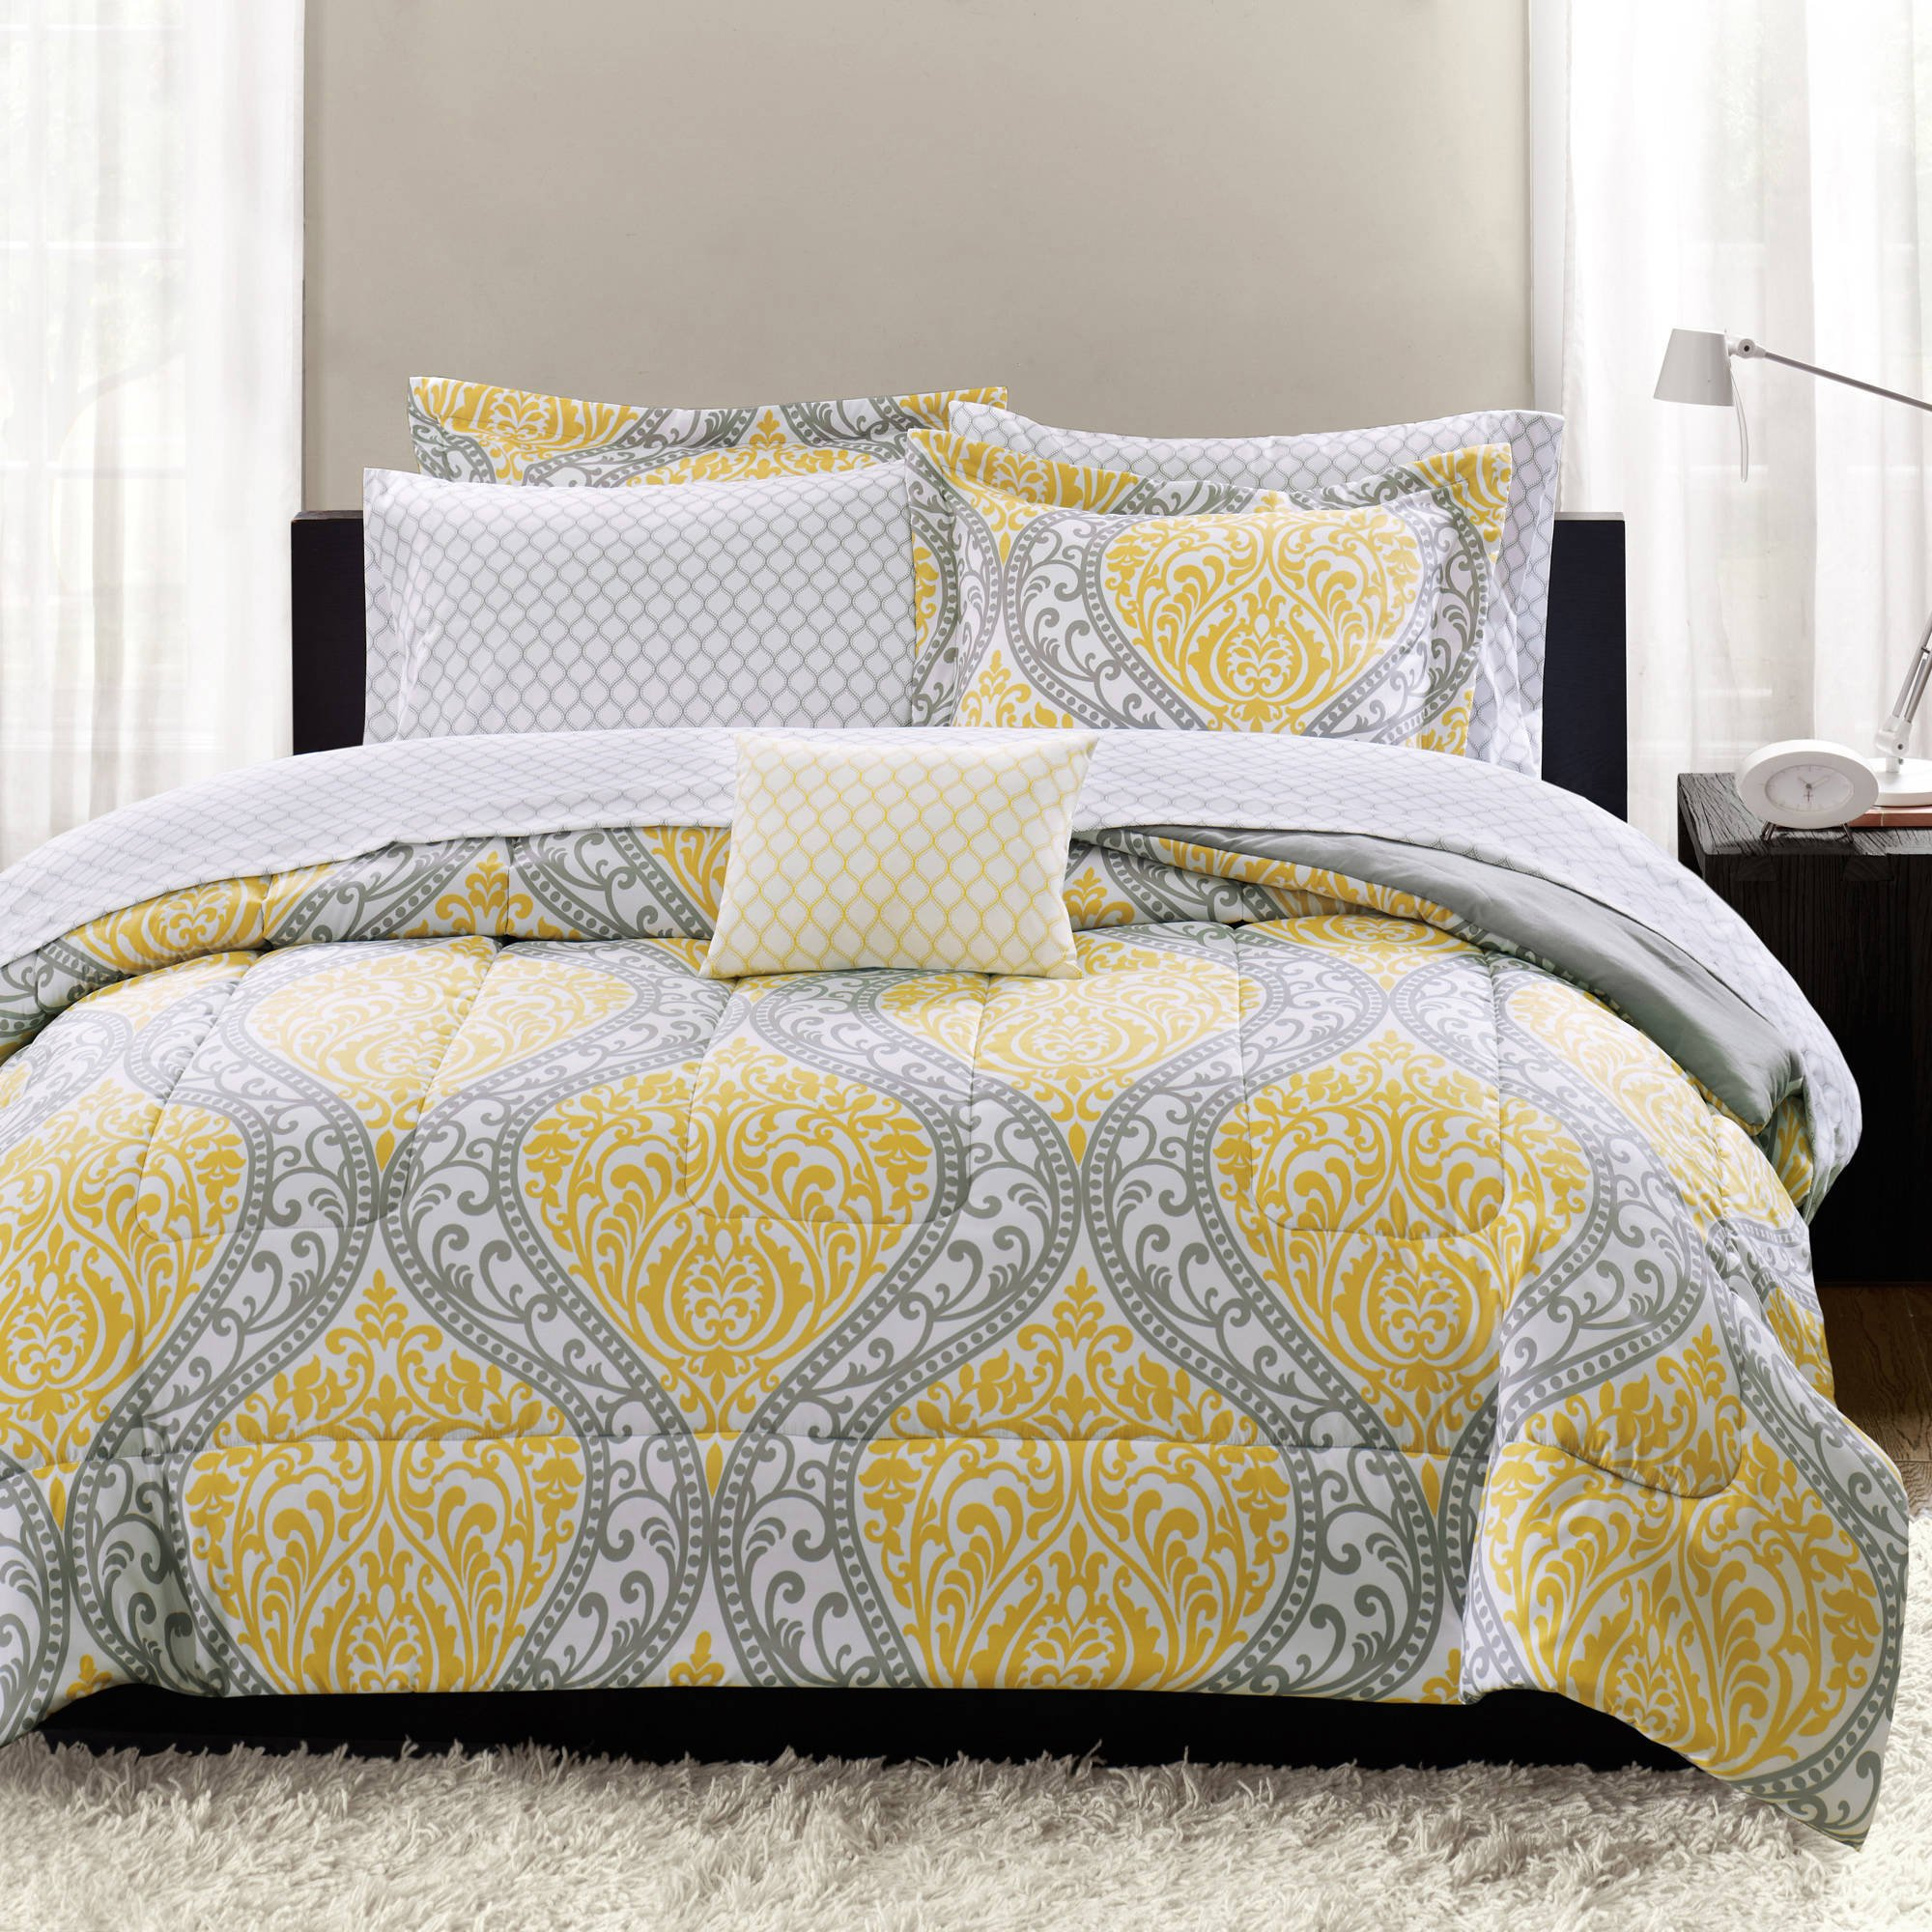 8 Piece Girls Yellow Grey Damask Theme Comforter Queen Set, Beautiful Girly All Over Medallion Geometric Floral Scroll Motif Bedding, Pretty Rich Boho Chic Bohemian Tribal Themed Pattern, Vibrant